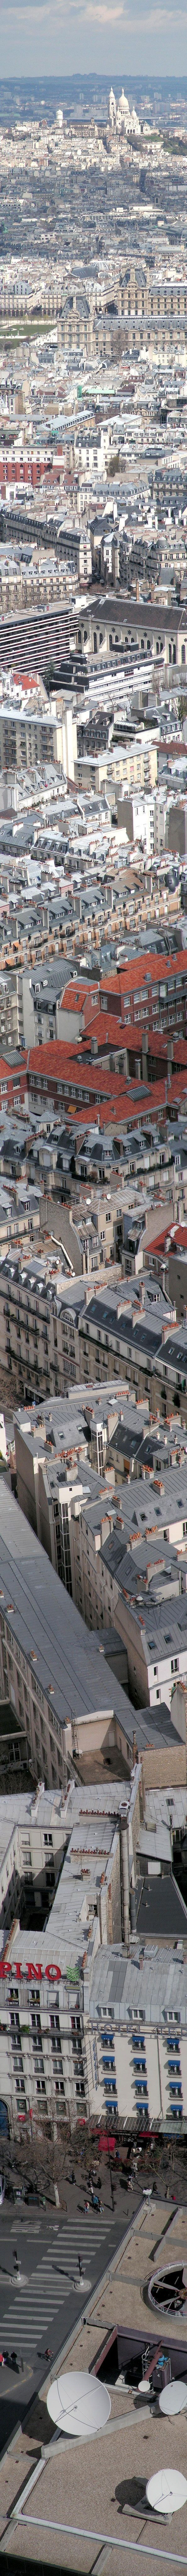 Paris: Paris, Buckets Lists, Favorite Places, Vertical Panorama, Cities, Beautiful Places, France, Amazing Places, Photo